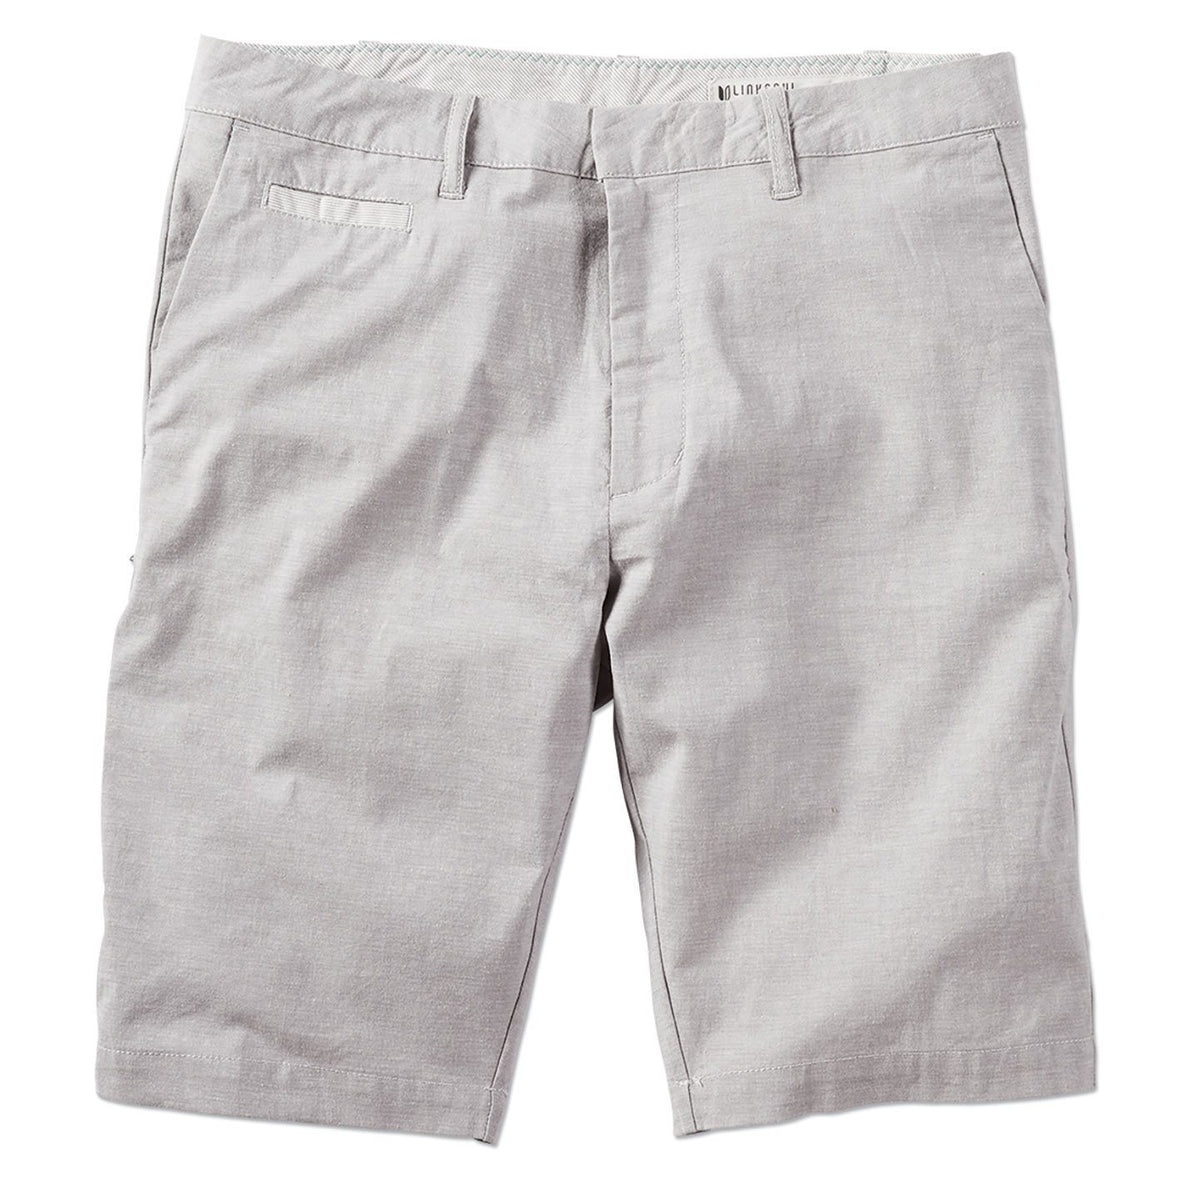 Stretch Comfort Chambray Short